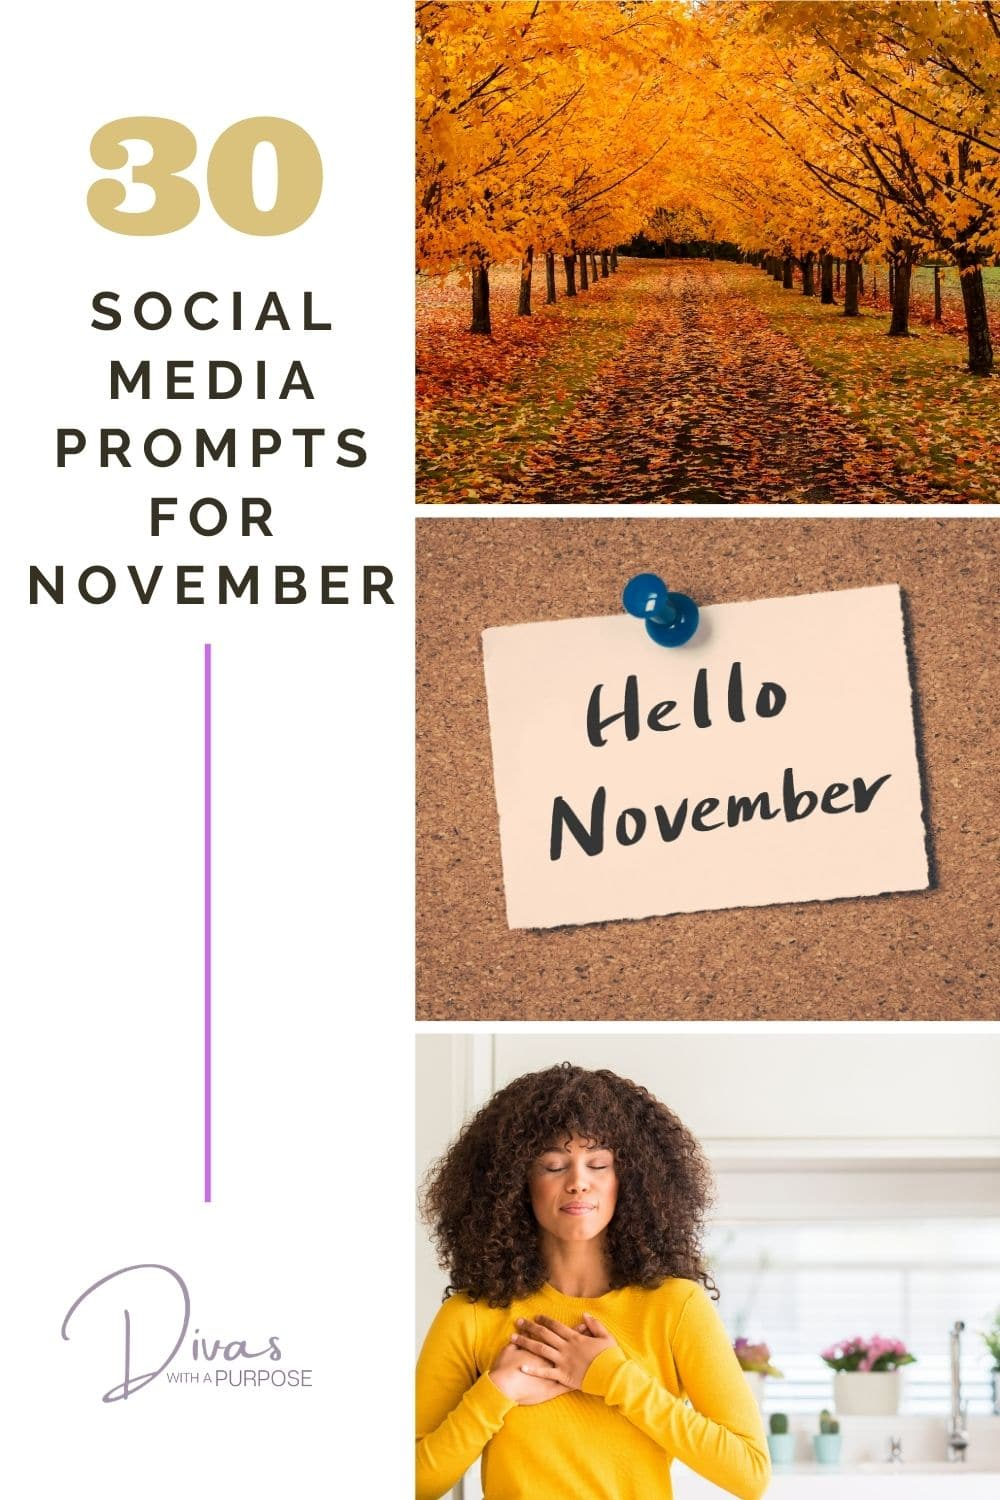 Here are 30 November Social Media Prompts to help you show up consistently and prepare your social media content calendar for the month.